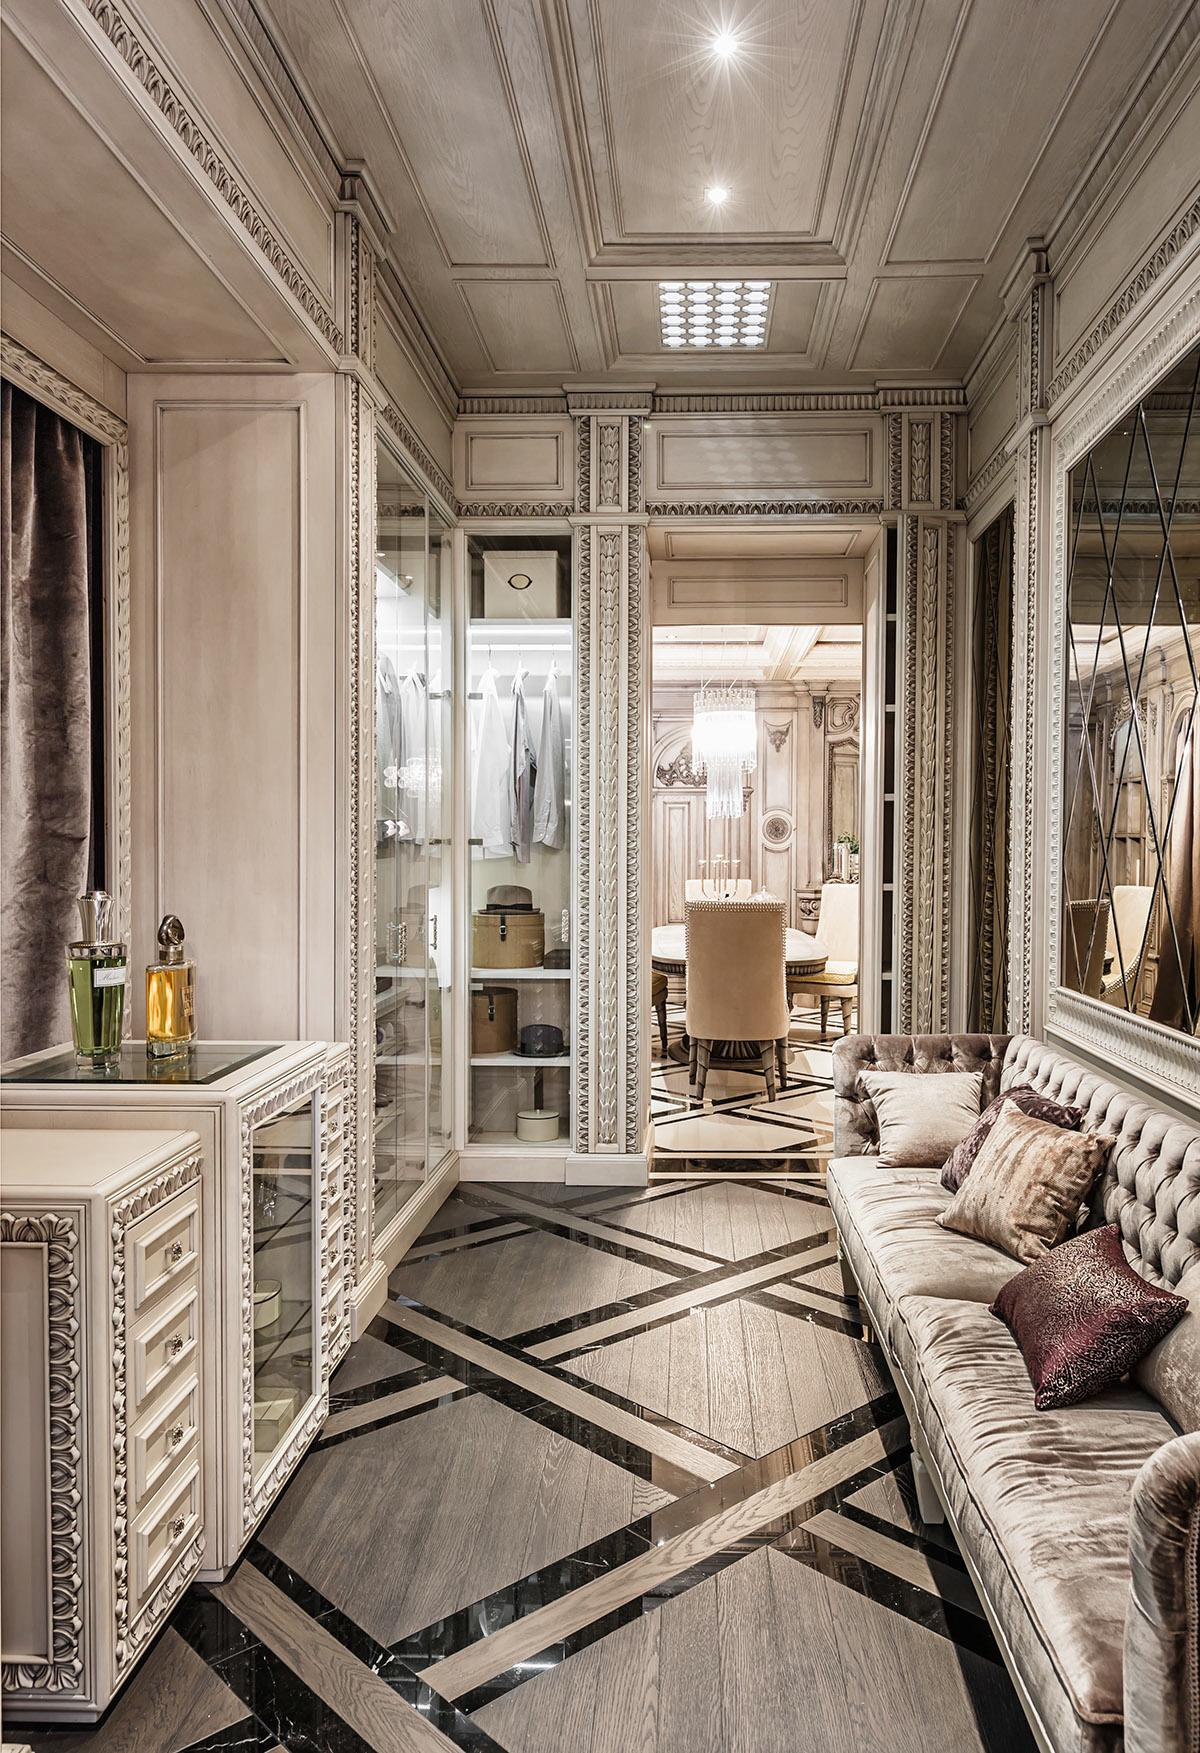 Neoclassical and art deco features in two luxurious interiors Contemporary classic interior design